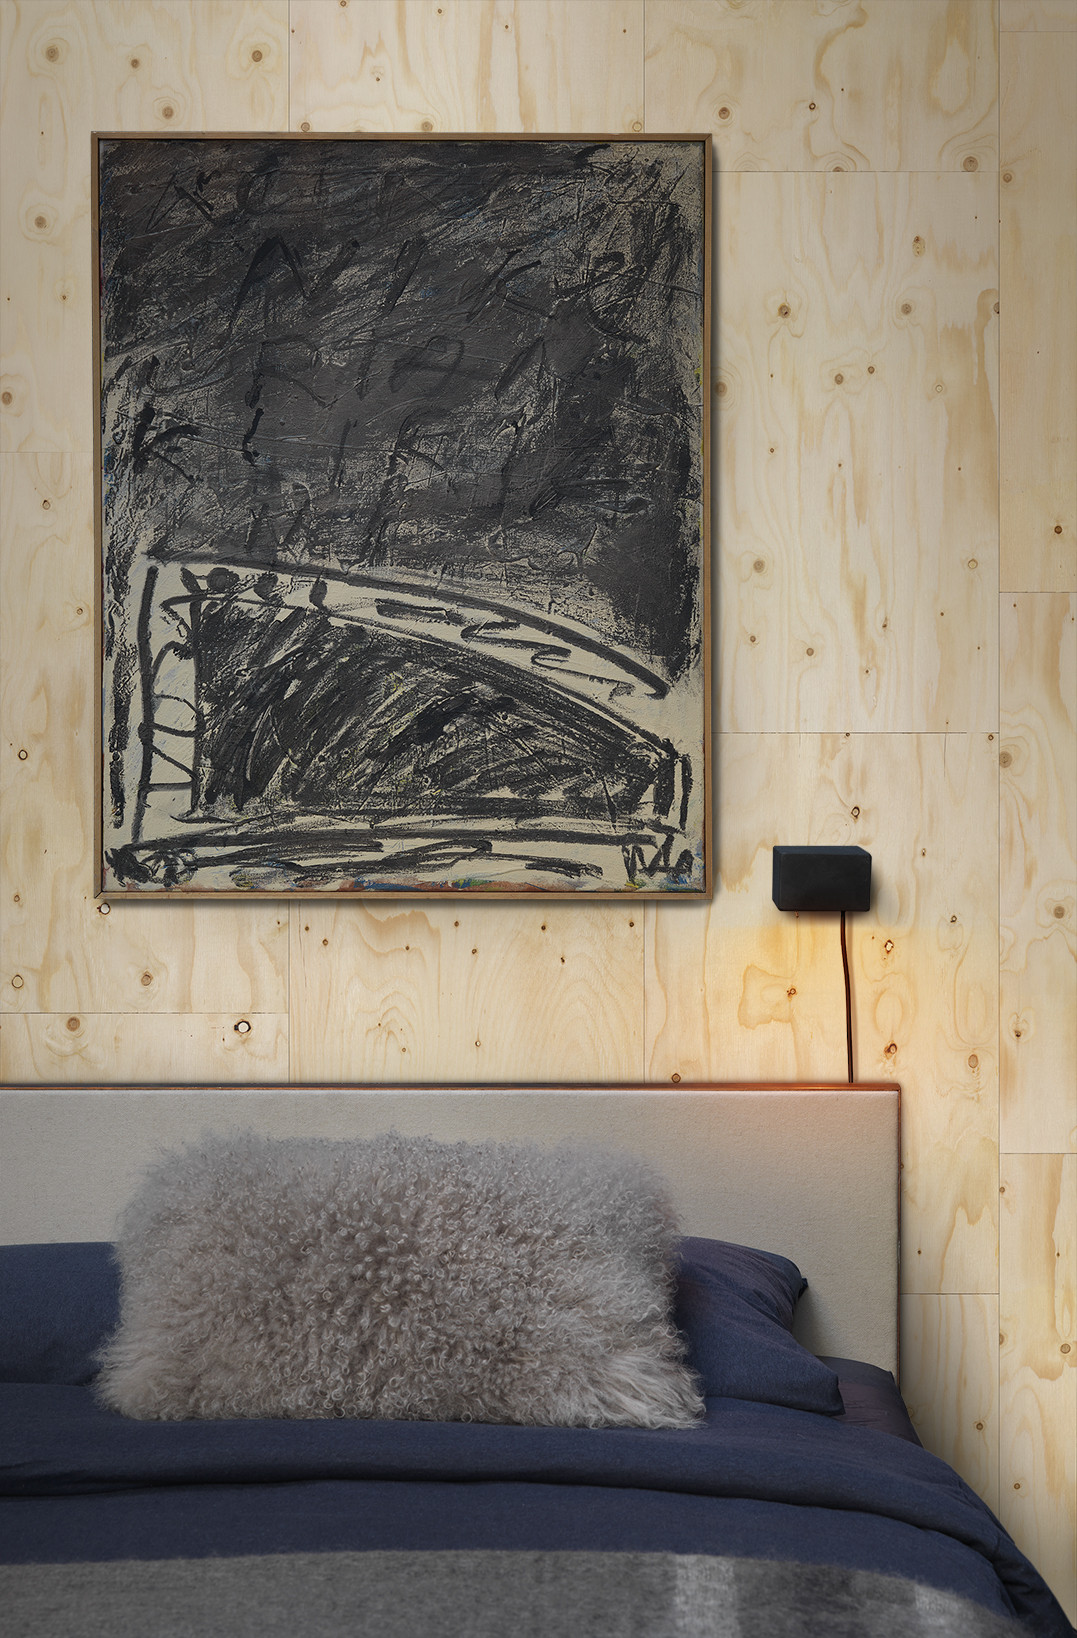 Piet hein eek plywood behang interieur inrichting for Piet hein eek behang